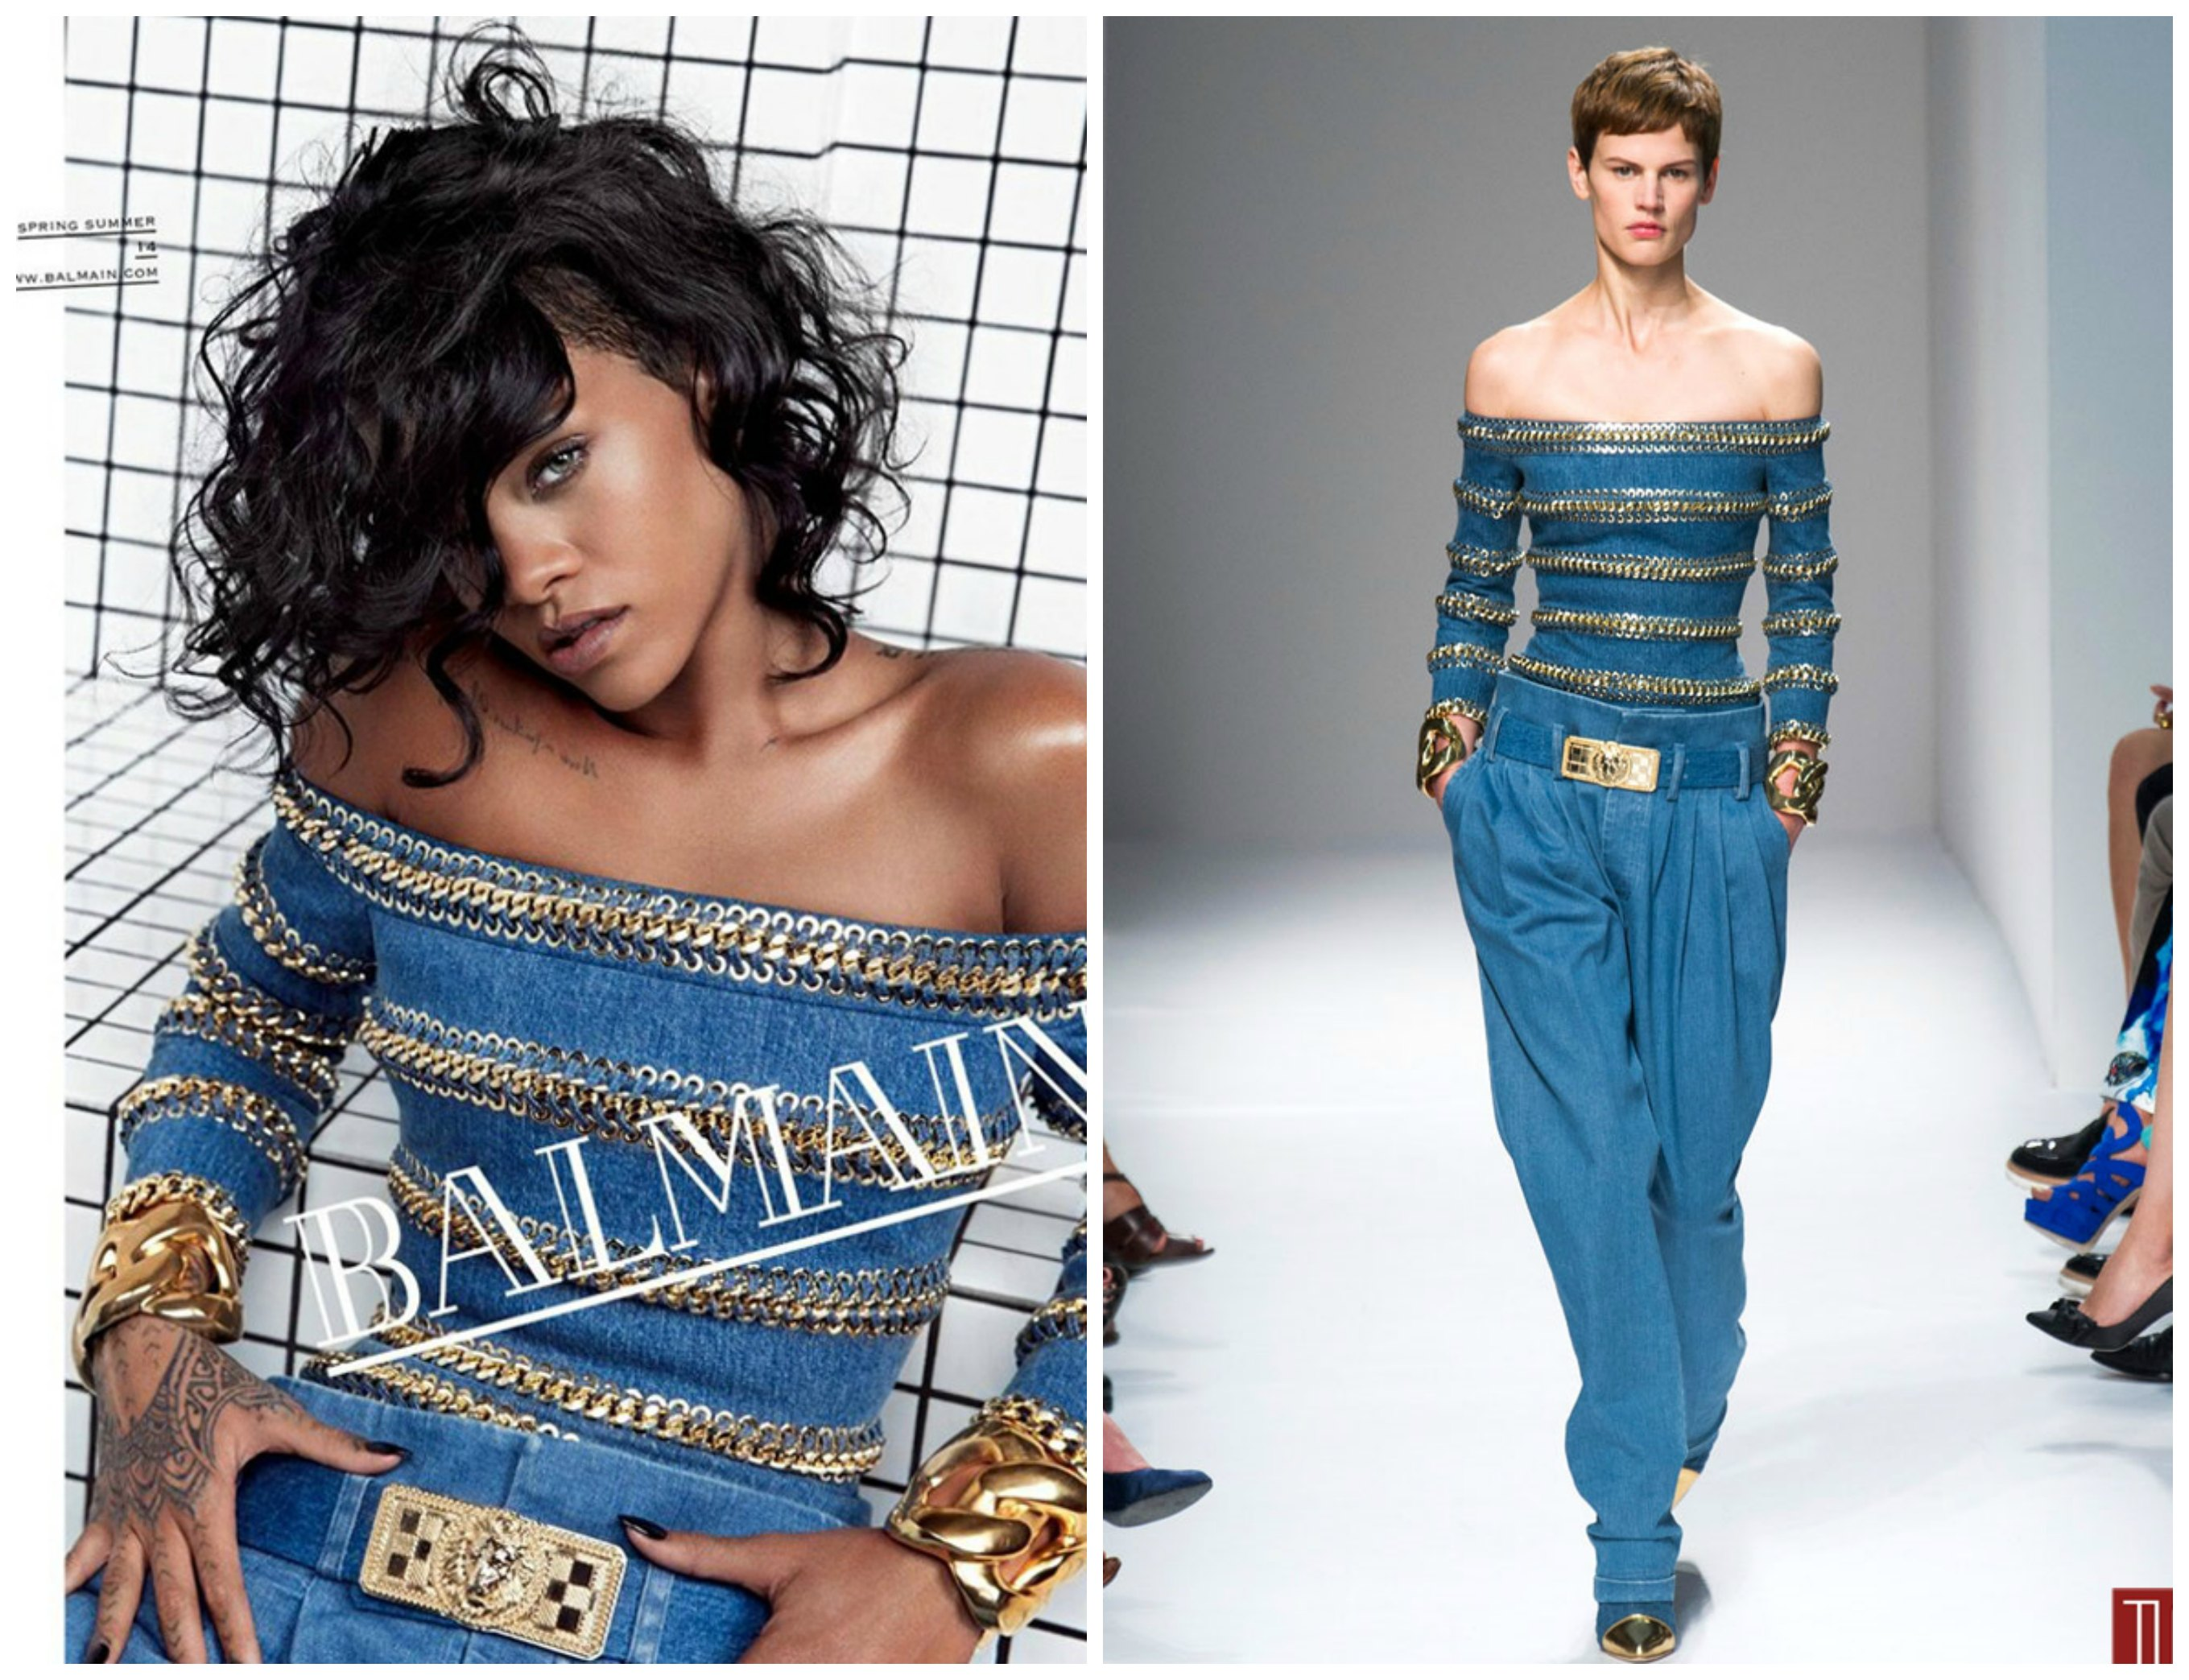 galleries related rihanna collage tumblr rihanna collage 2013 rihanna ...